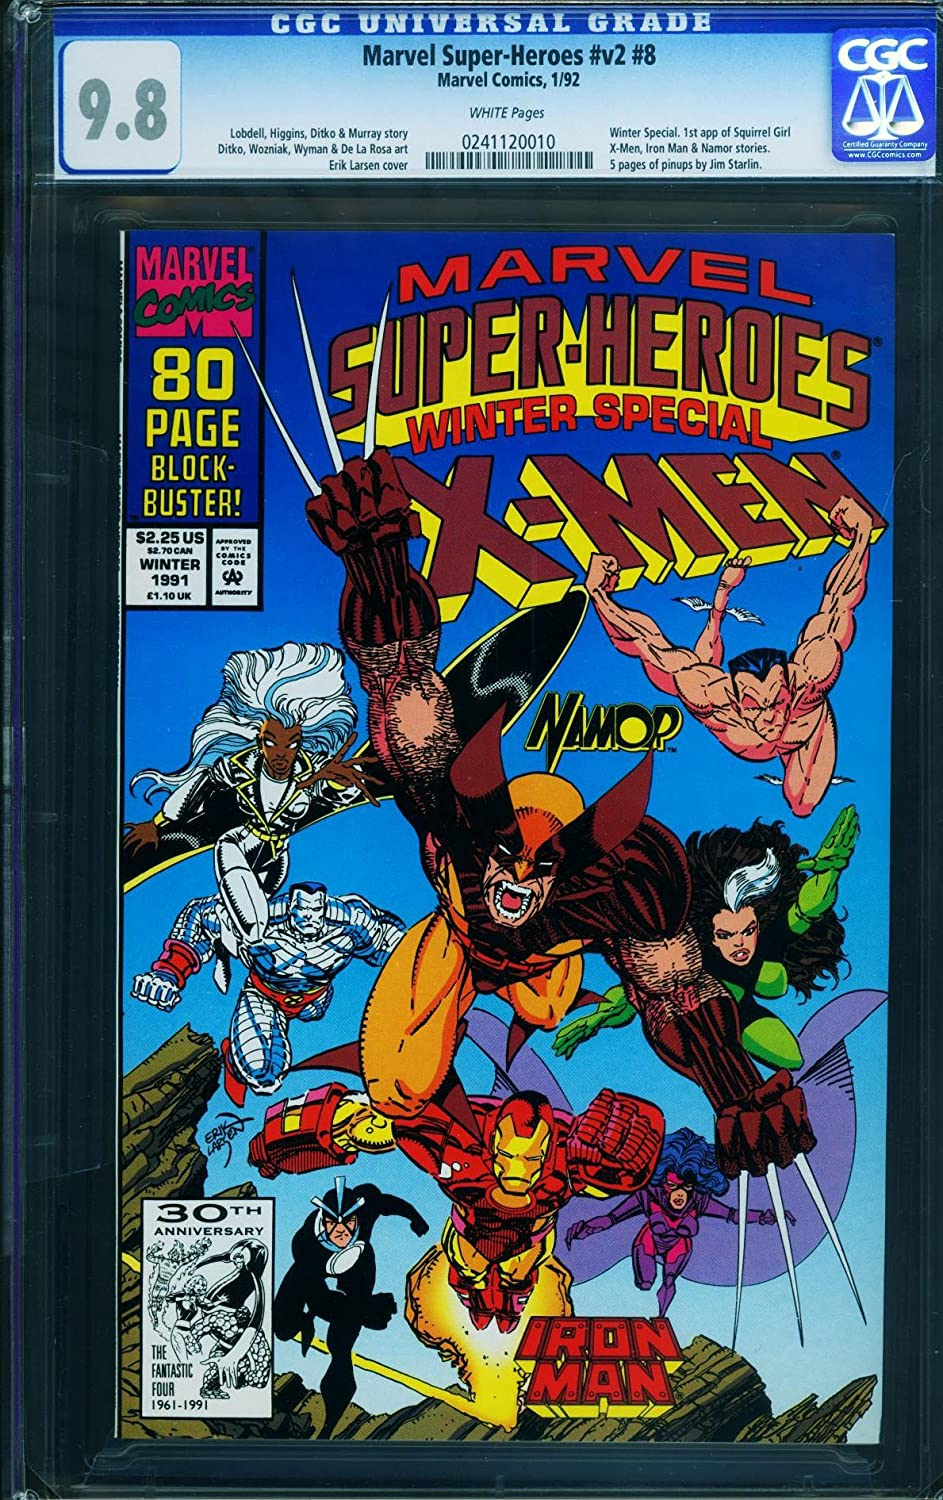 Marvel Super-Heroes Vol. 2 #8 Cgc 9.8-wp-Winter Special1991-First Squirrel Girl heroes